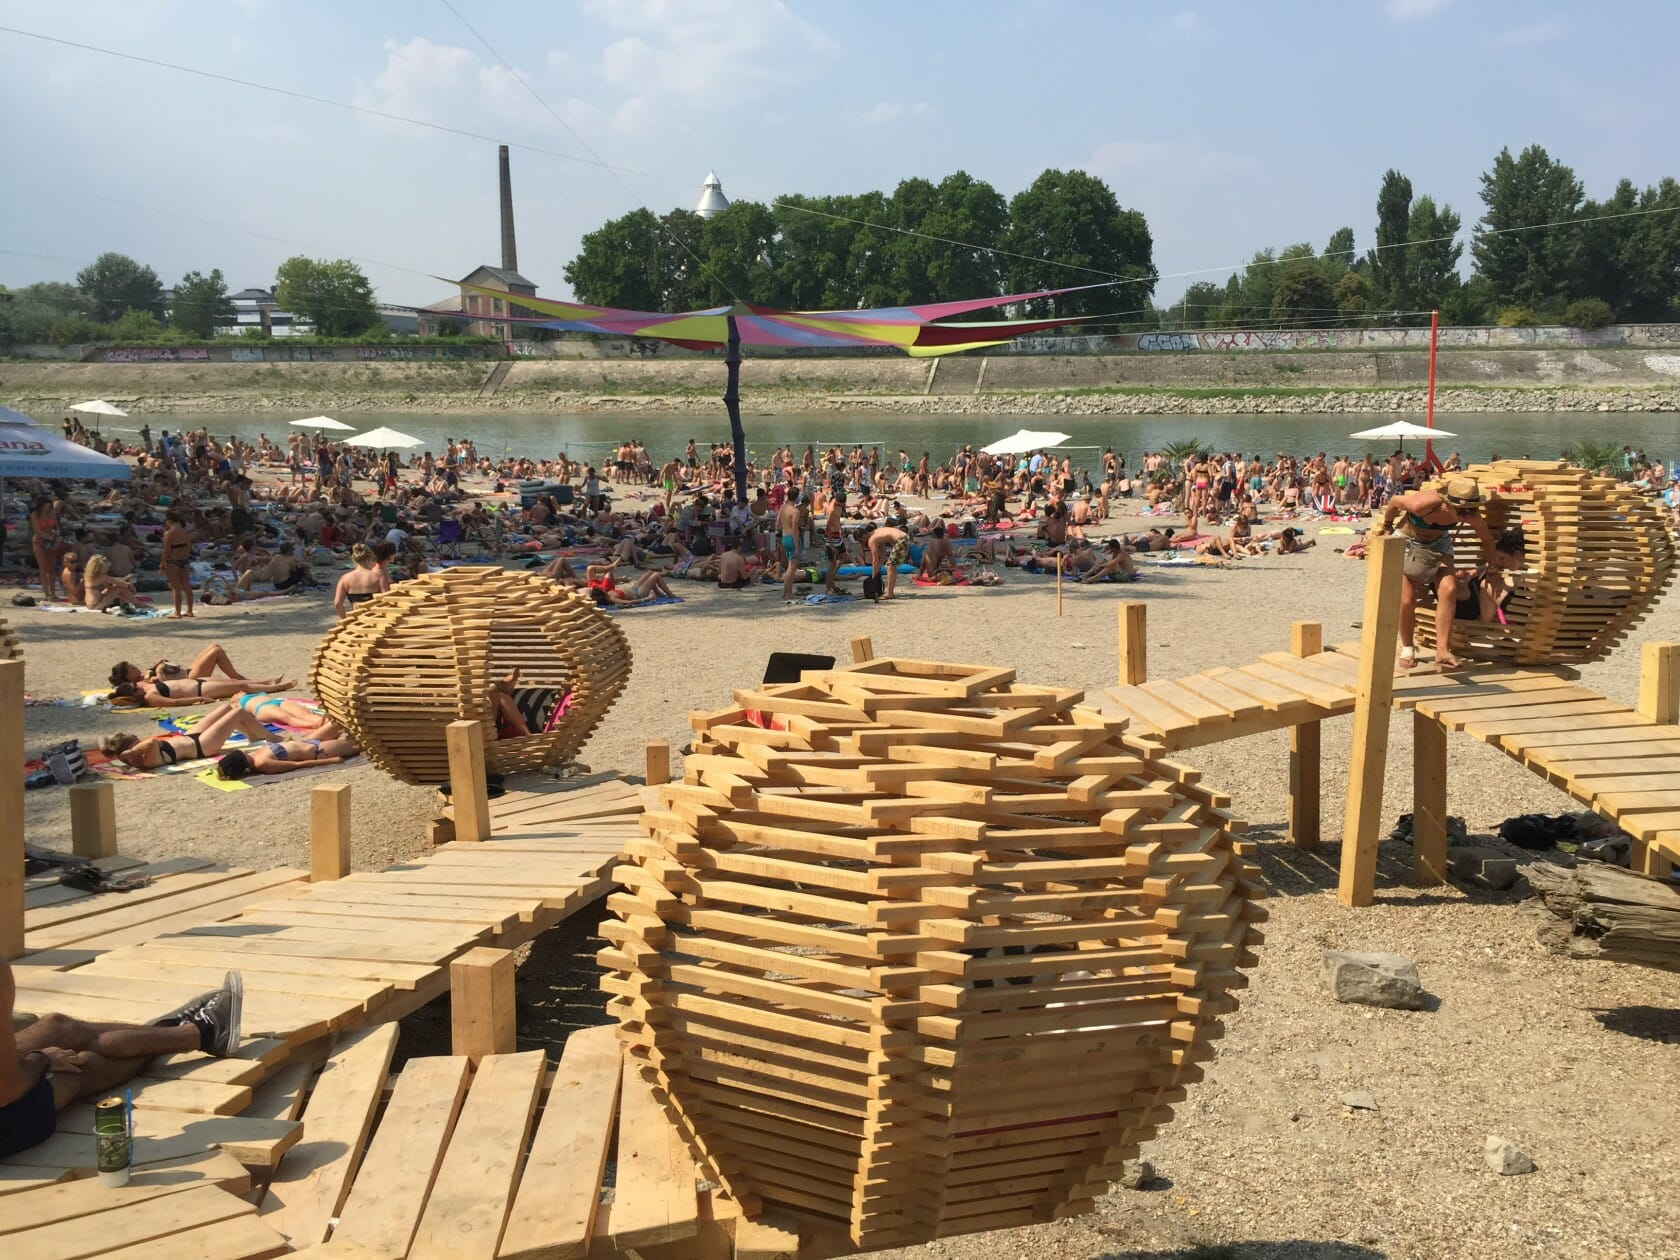 sziget review + festival guide for sziget festival in budapest august sziget beach